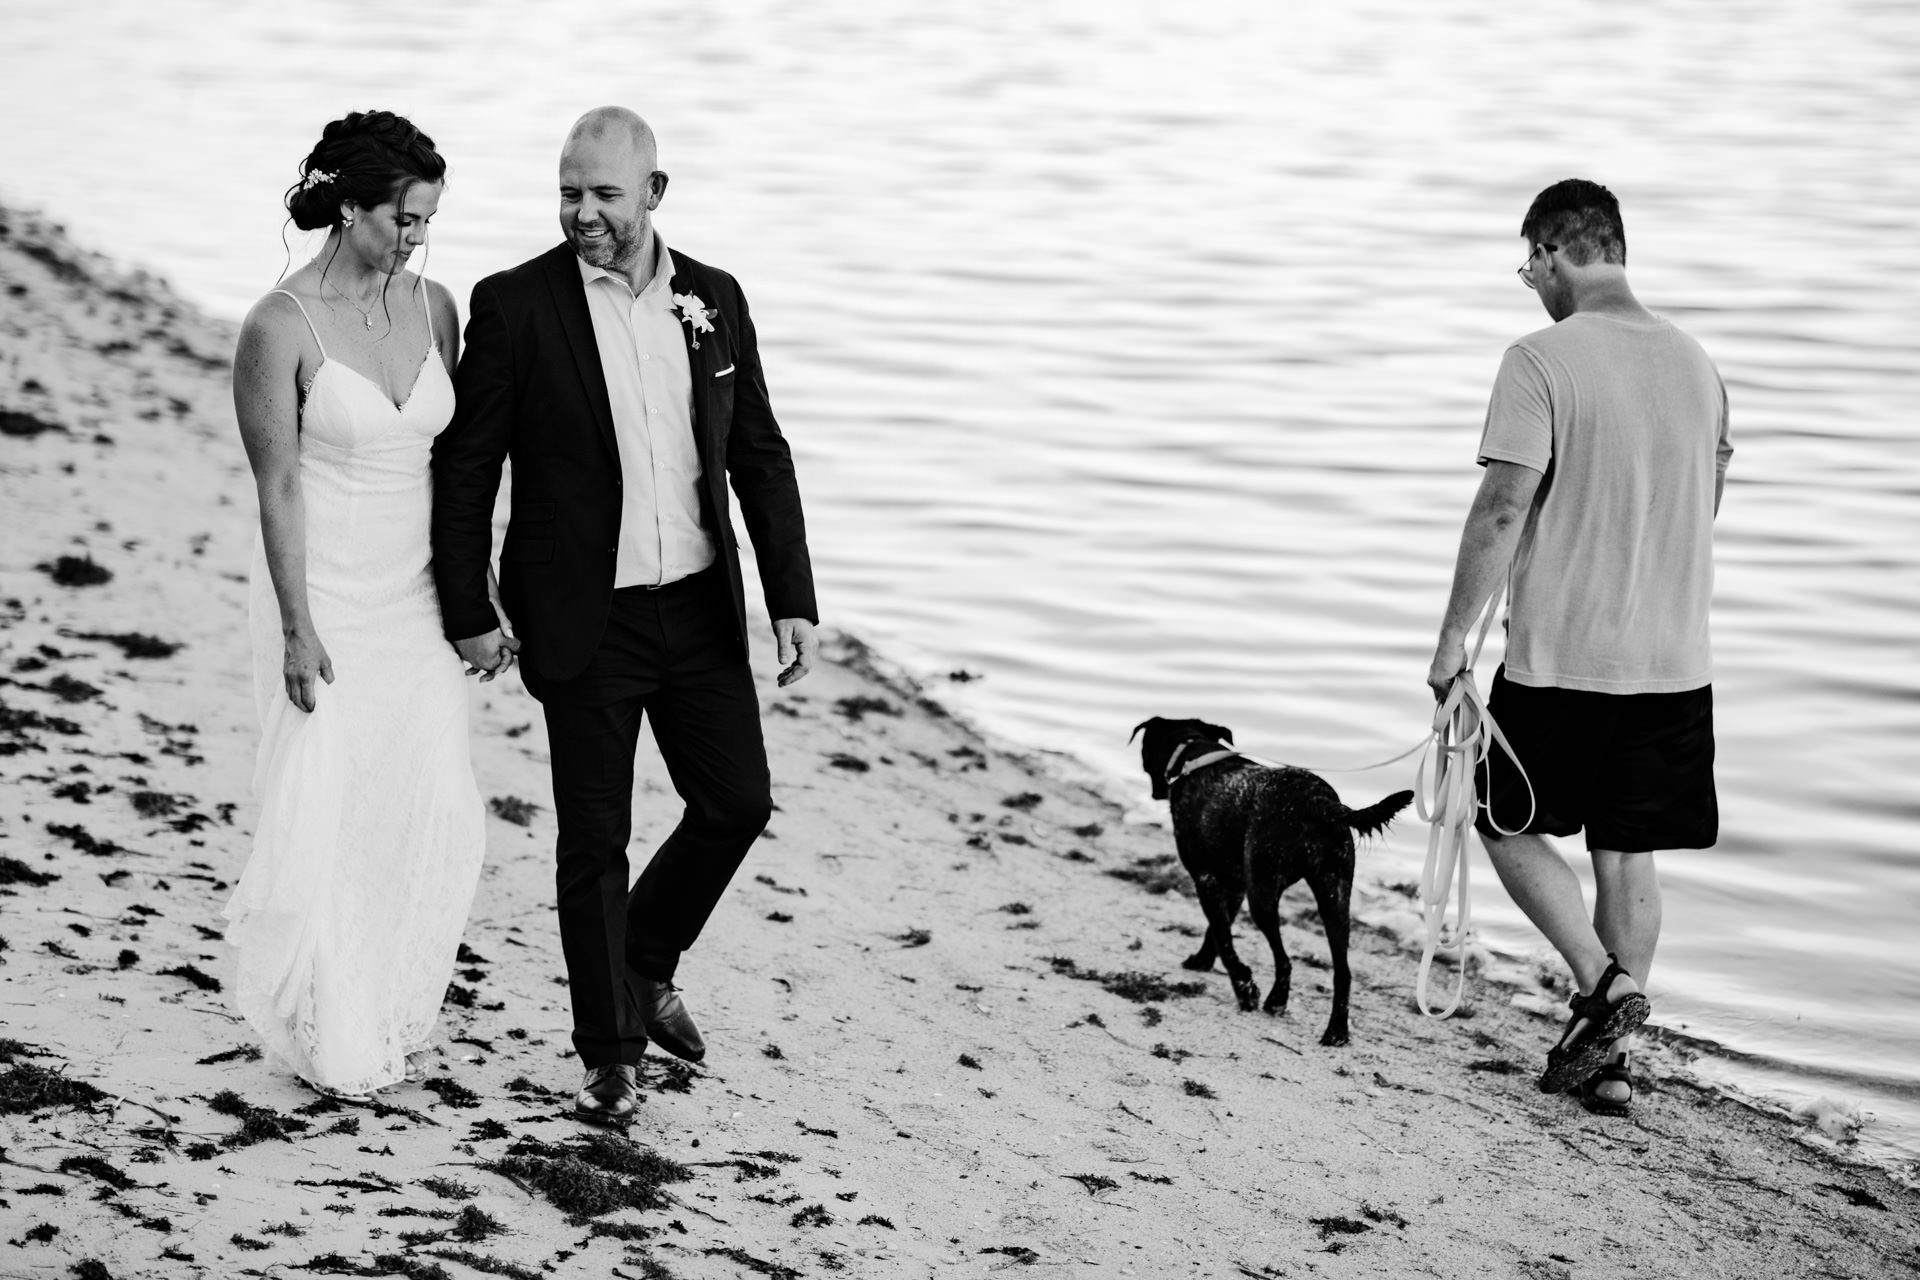 Newly eloped couple walking on the beach at old town manor in key west.